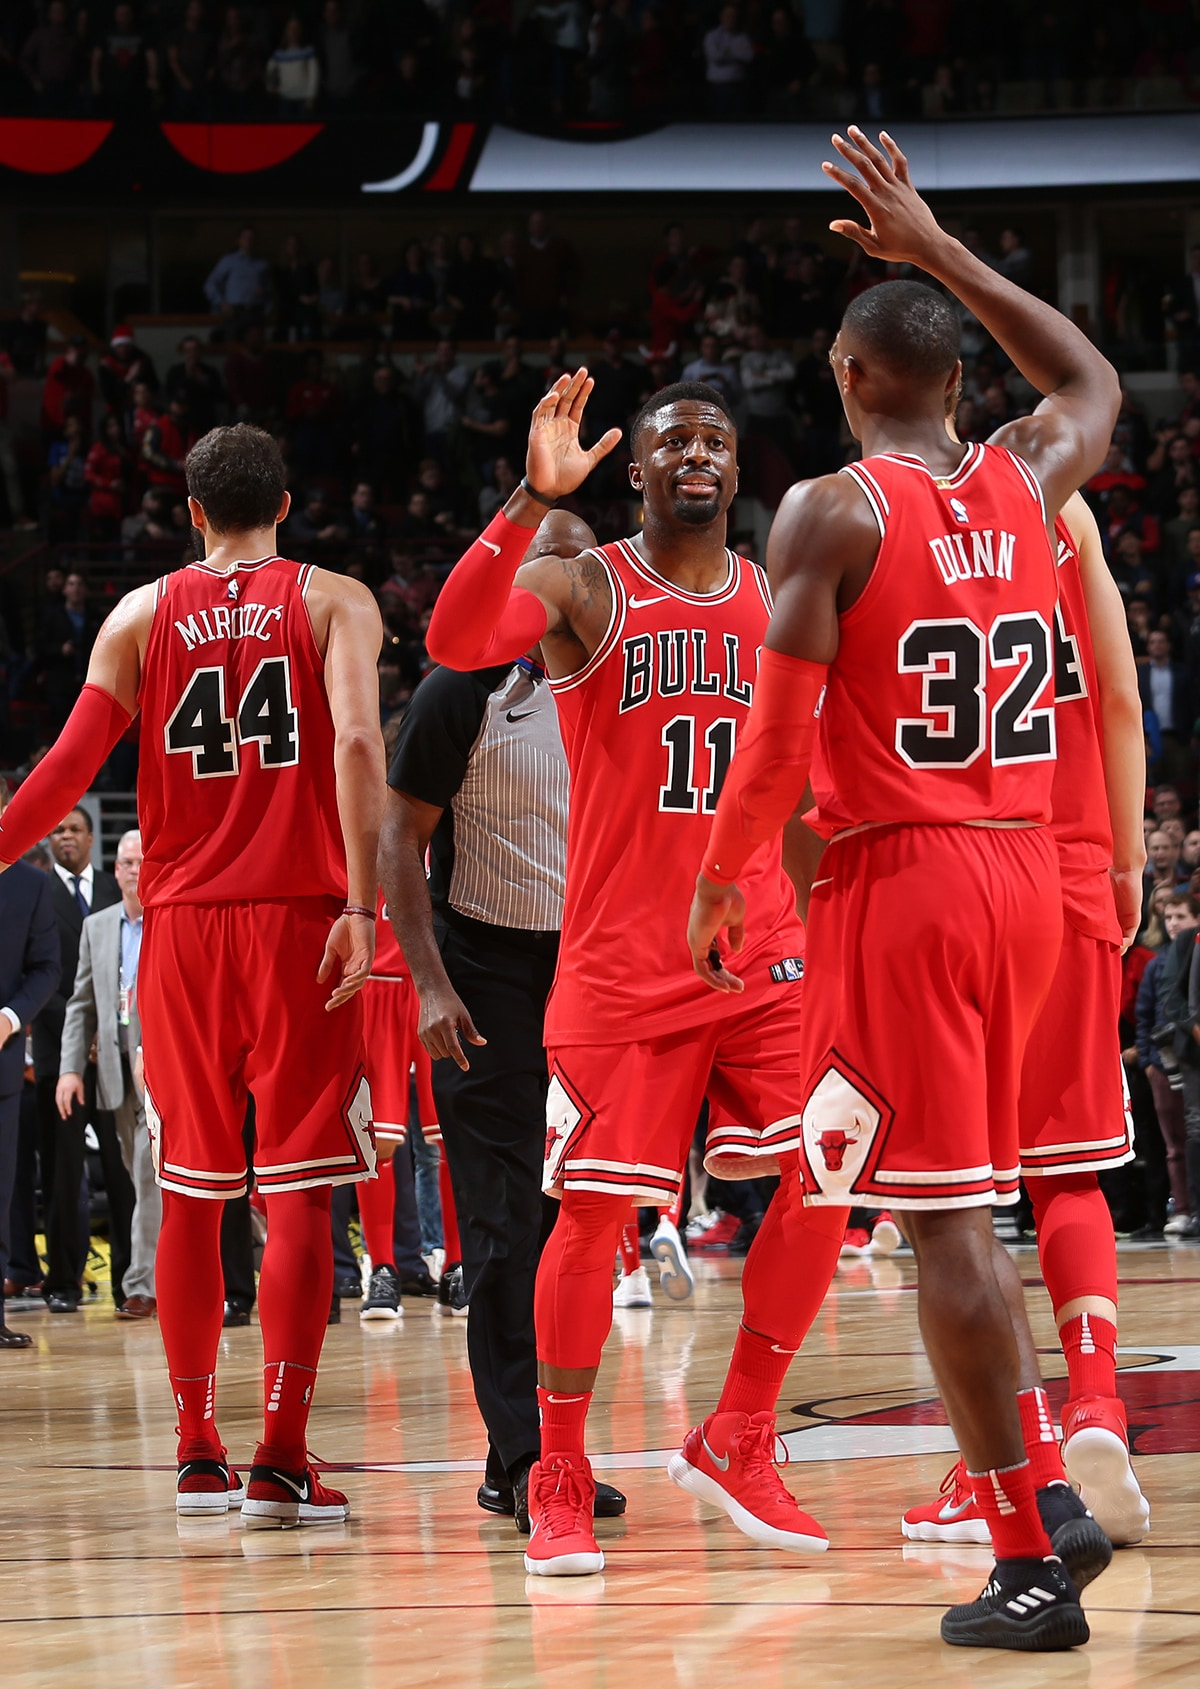 Kris Dunn and David Nwaba of the Chicago Bulls high-five during the Bulls game against the Orlando Magic at the United Center on December 20, 2017 in Chicago, Illinois.